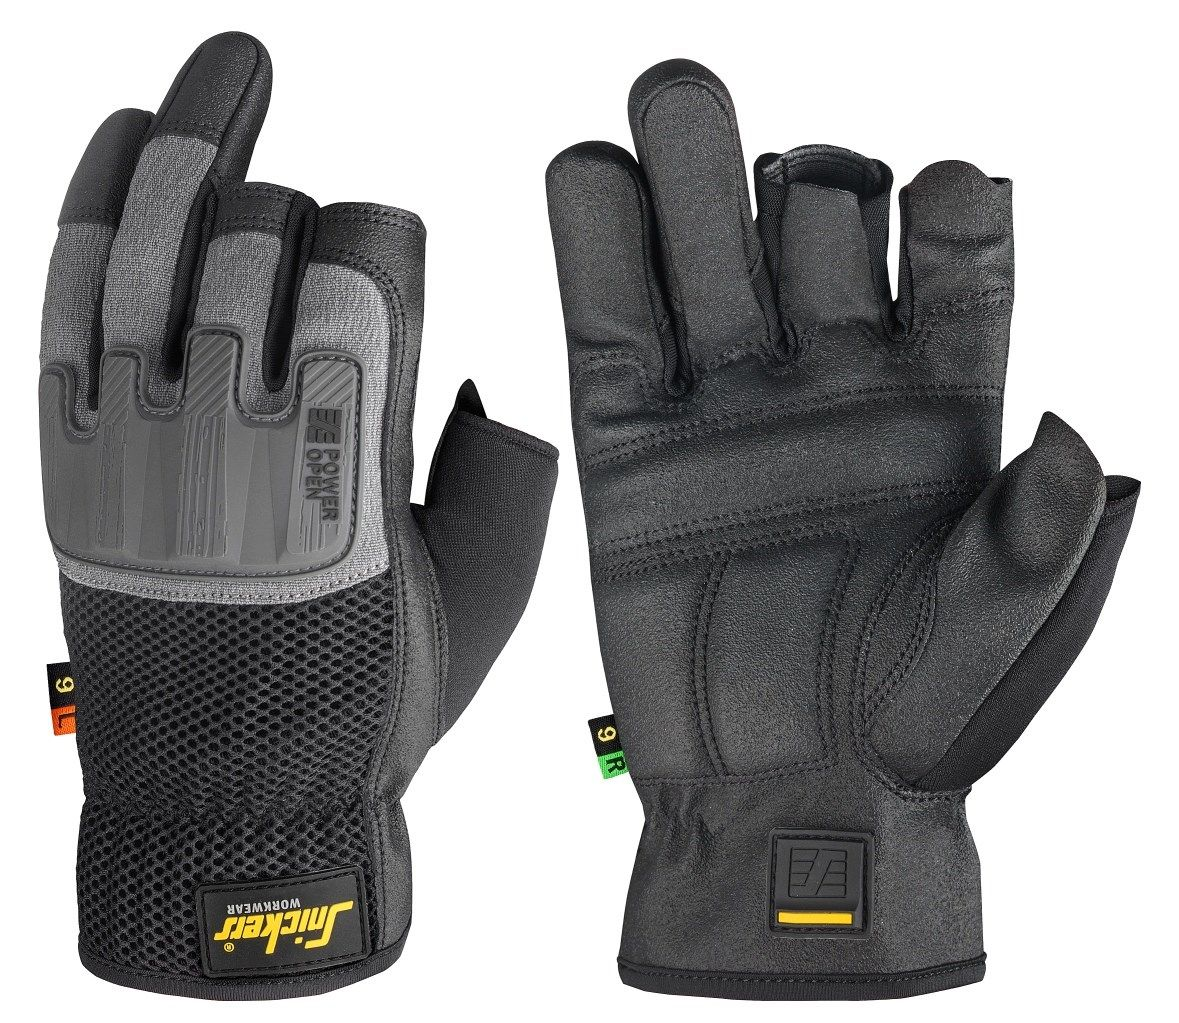 Fingerless impact gloves - Power Open Gloves That Keep You Free And Protected Reinforced Fingerless Work Gloves Combining Reliable